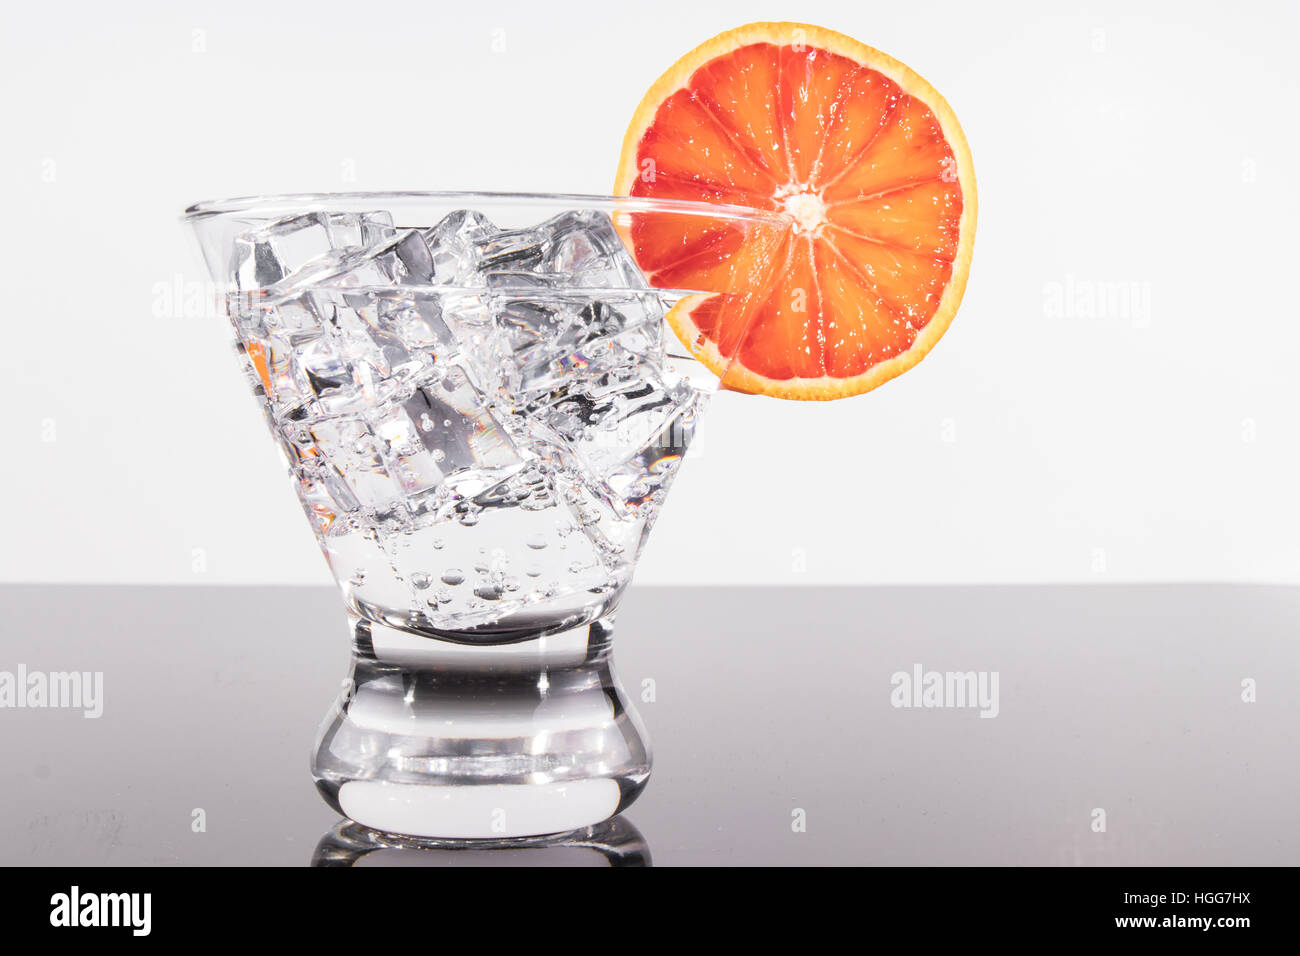 Sparkling beverage in a martini glass with a blood orange slice - Stock Image